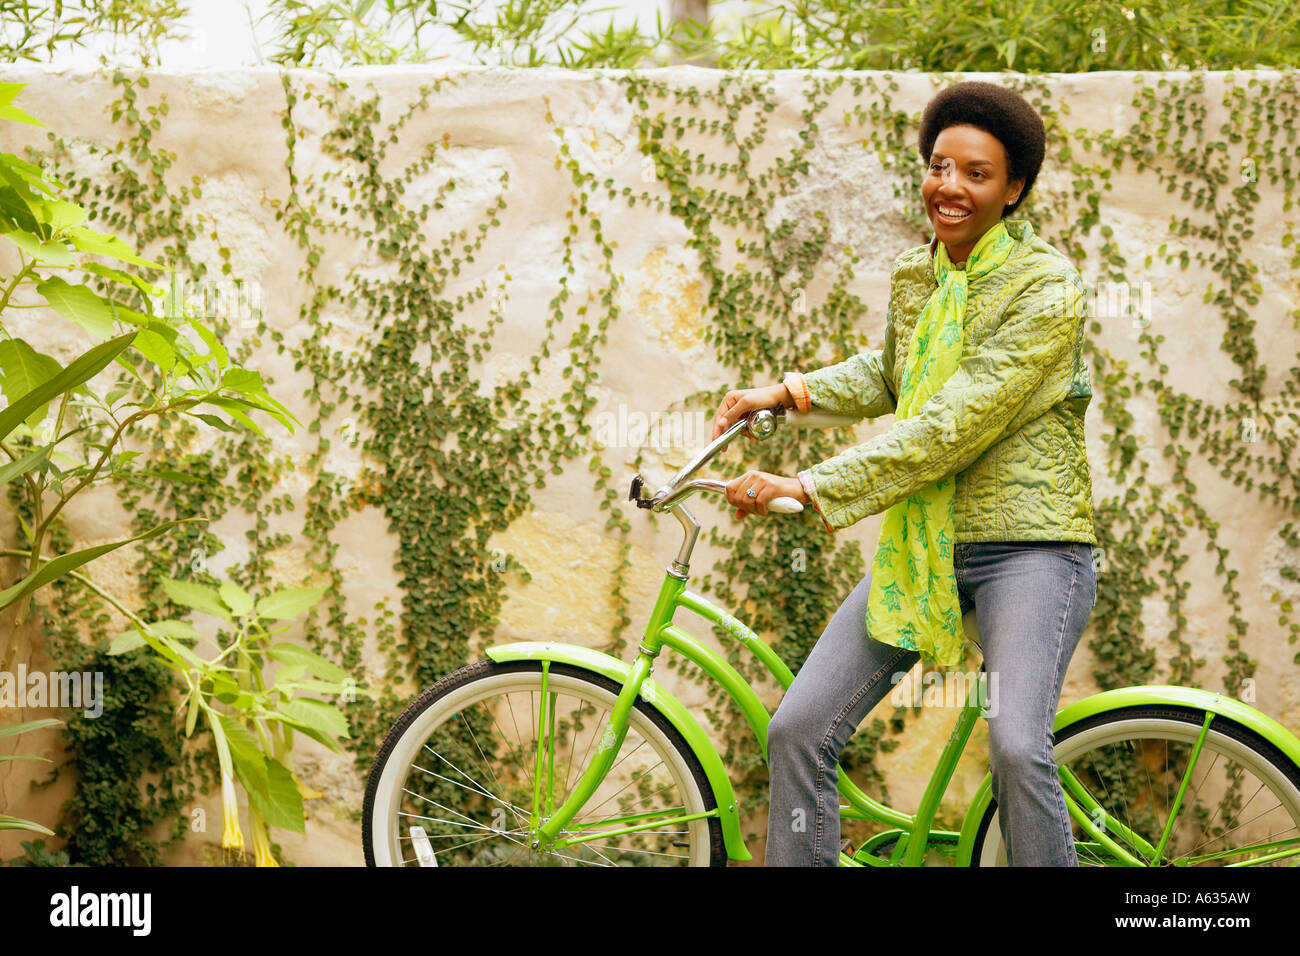 Young woman sitting on a bicycle - Stock Image